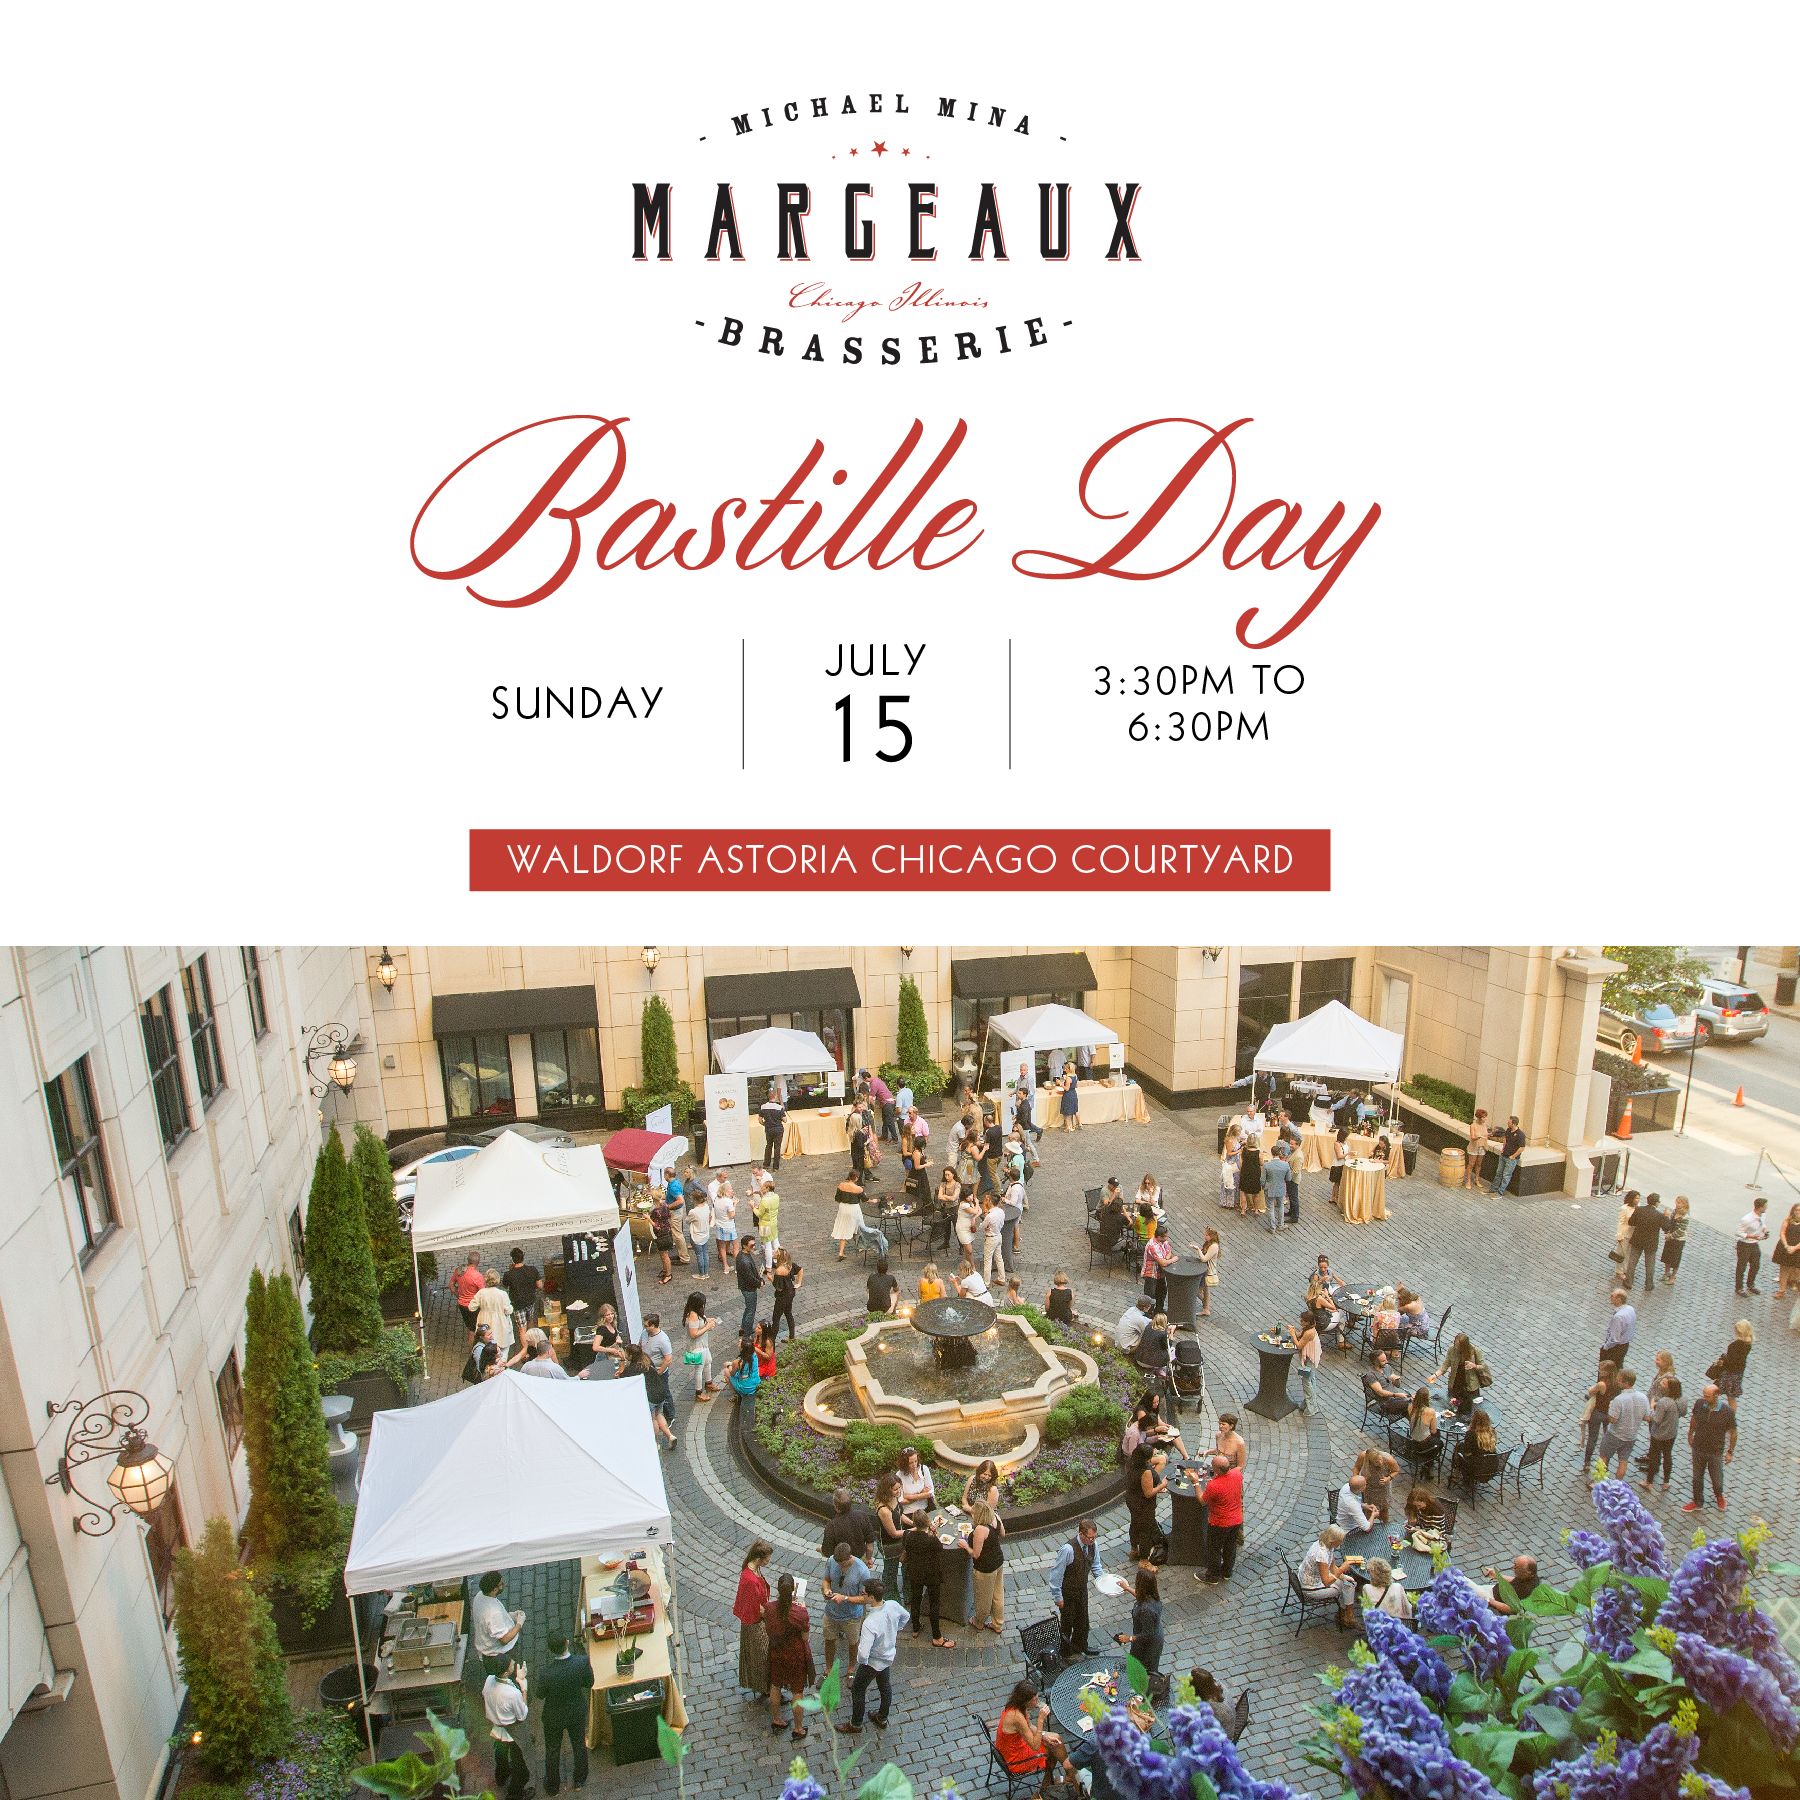 Margeaux Bastille Day Instagtram Graphic v1.jpg